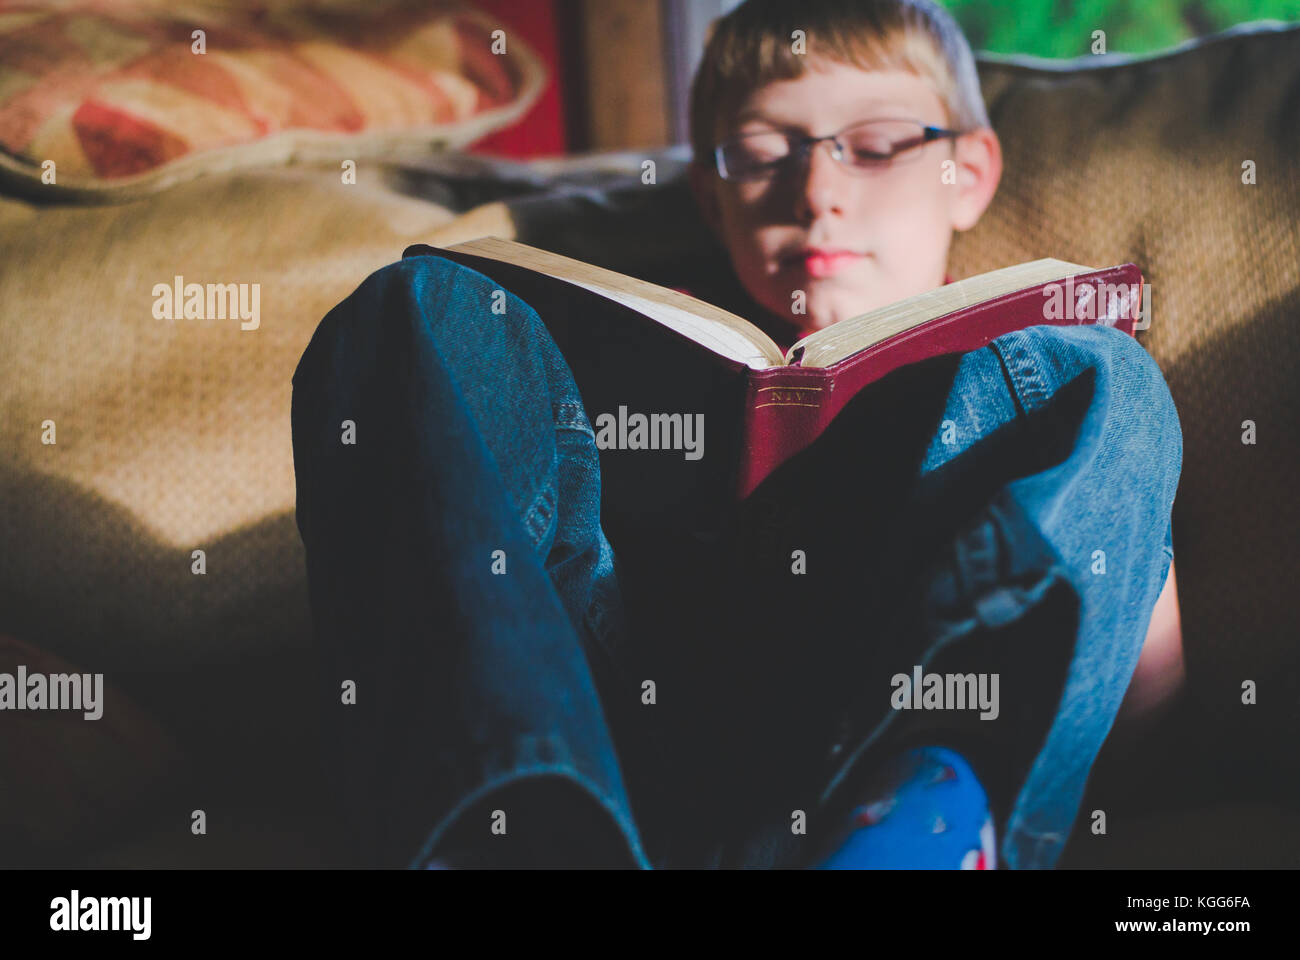 10-11 year old boy reading a book - Stock Image